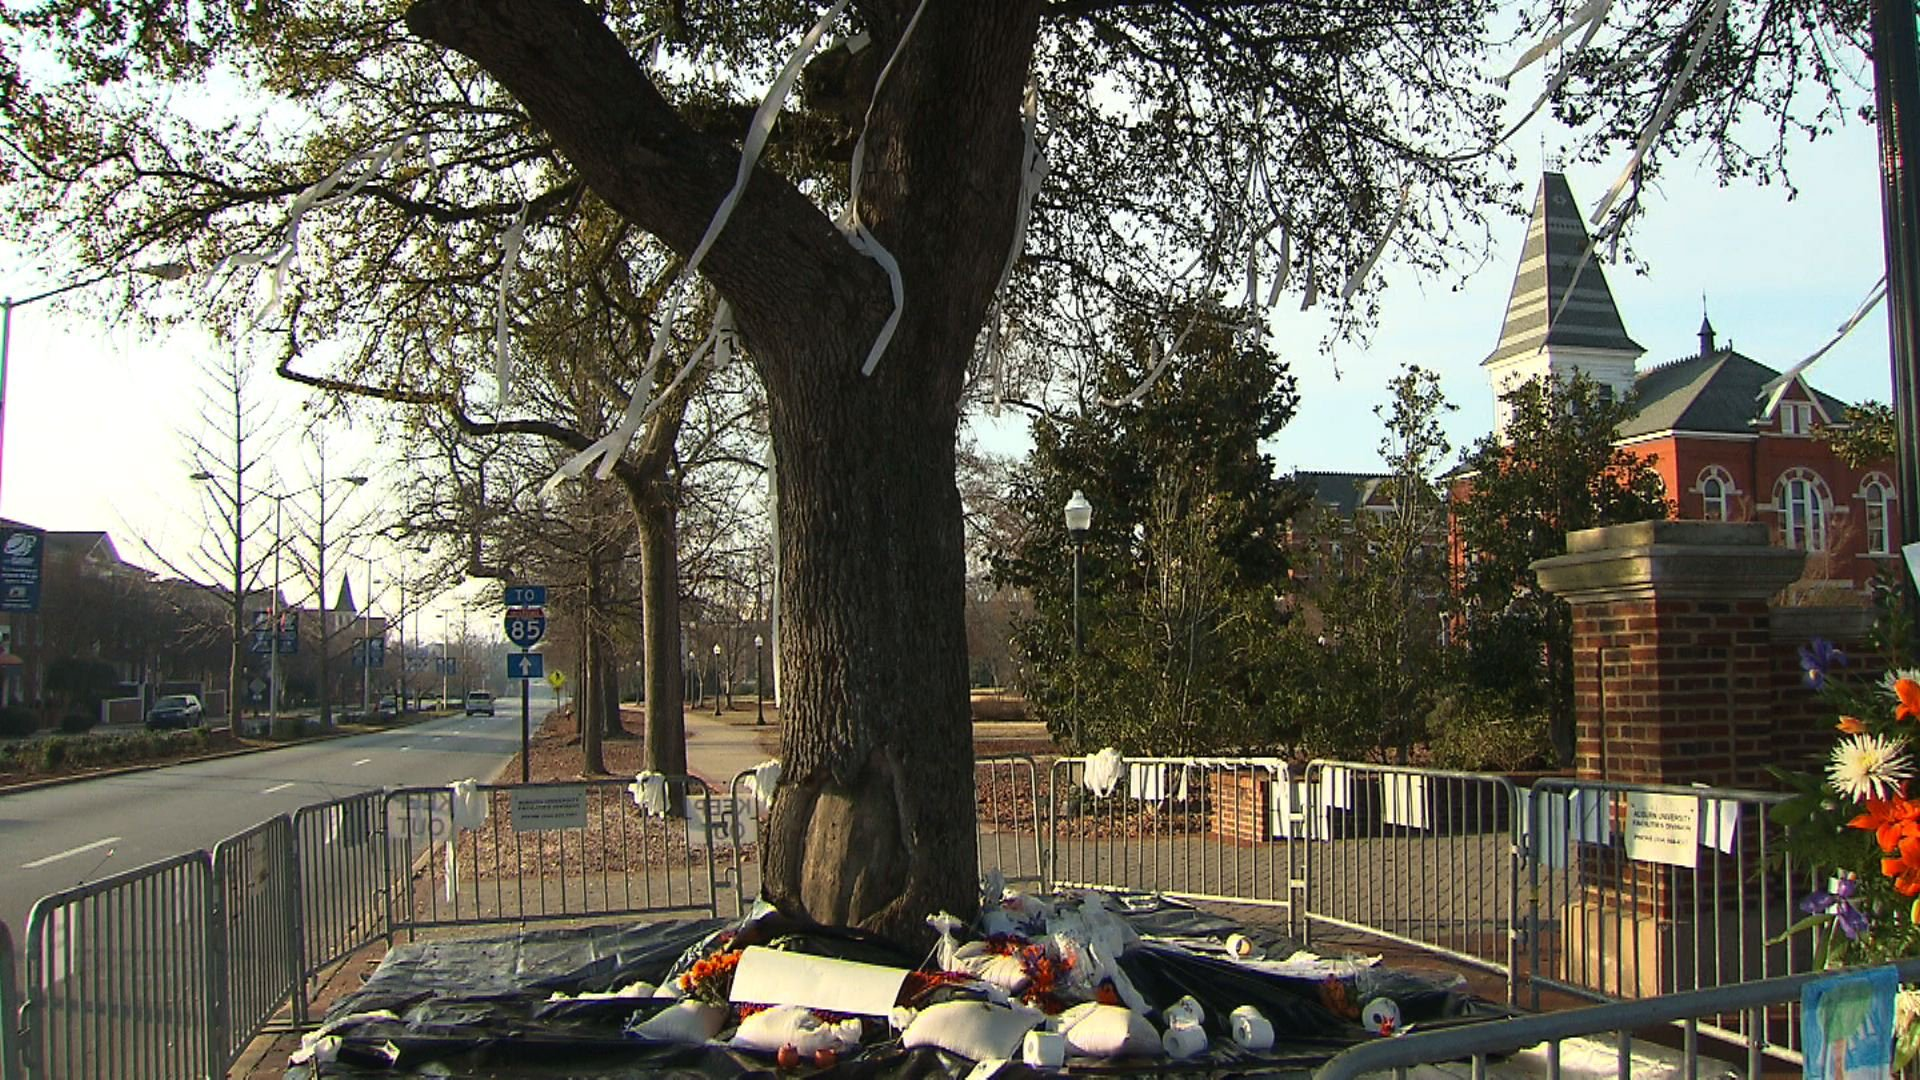 Harvey Updyke, who poisoned landmark oak trees at Auburn University, dies at 71